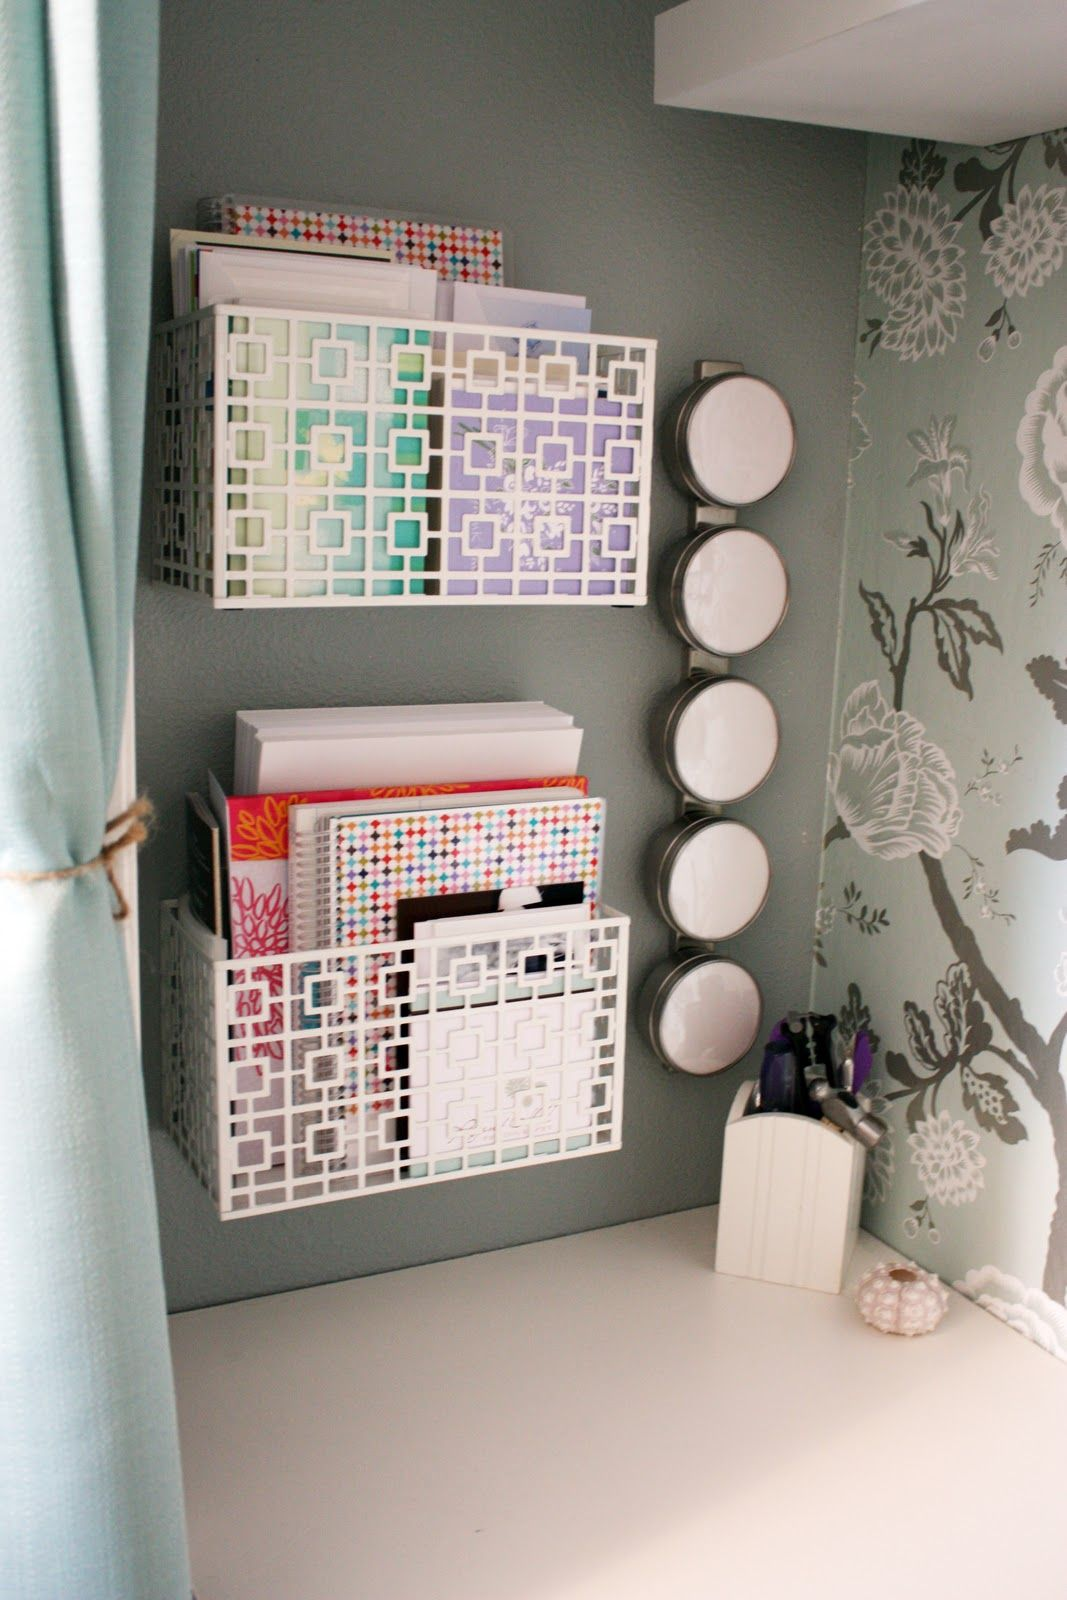 19. Install Organizing Bins To Your Wall.